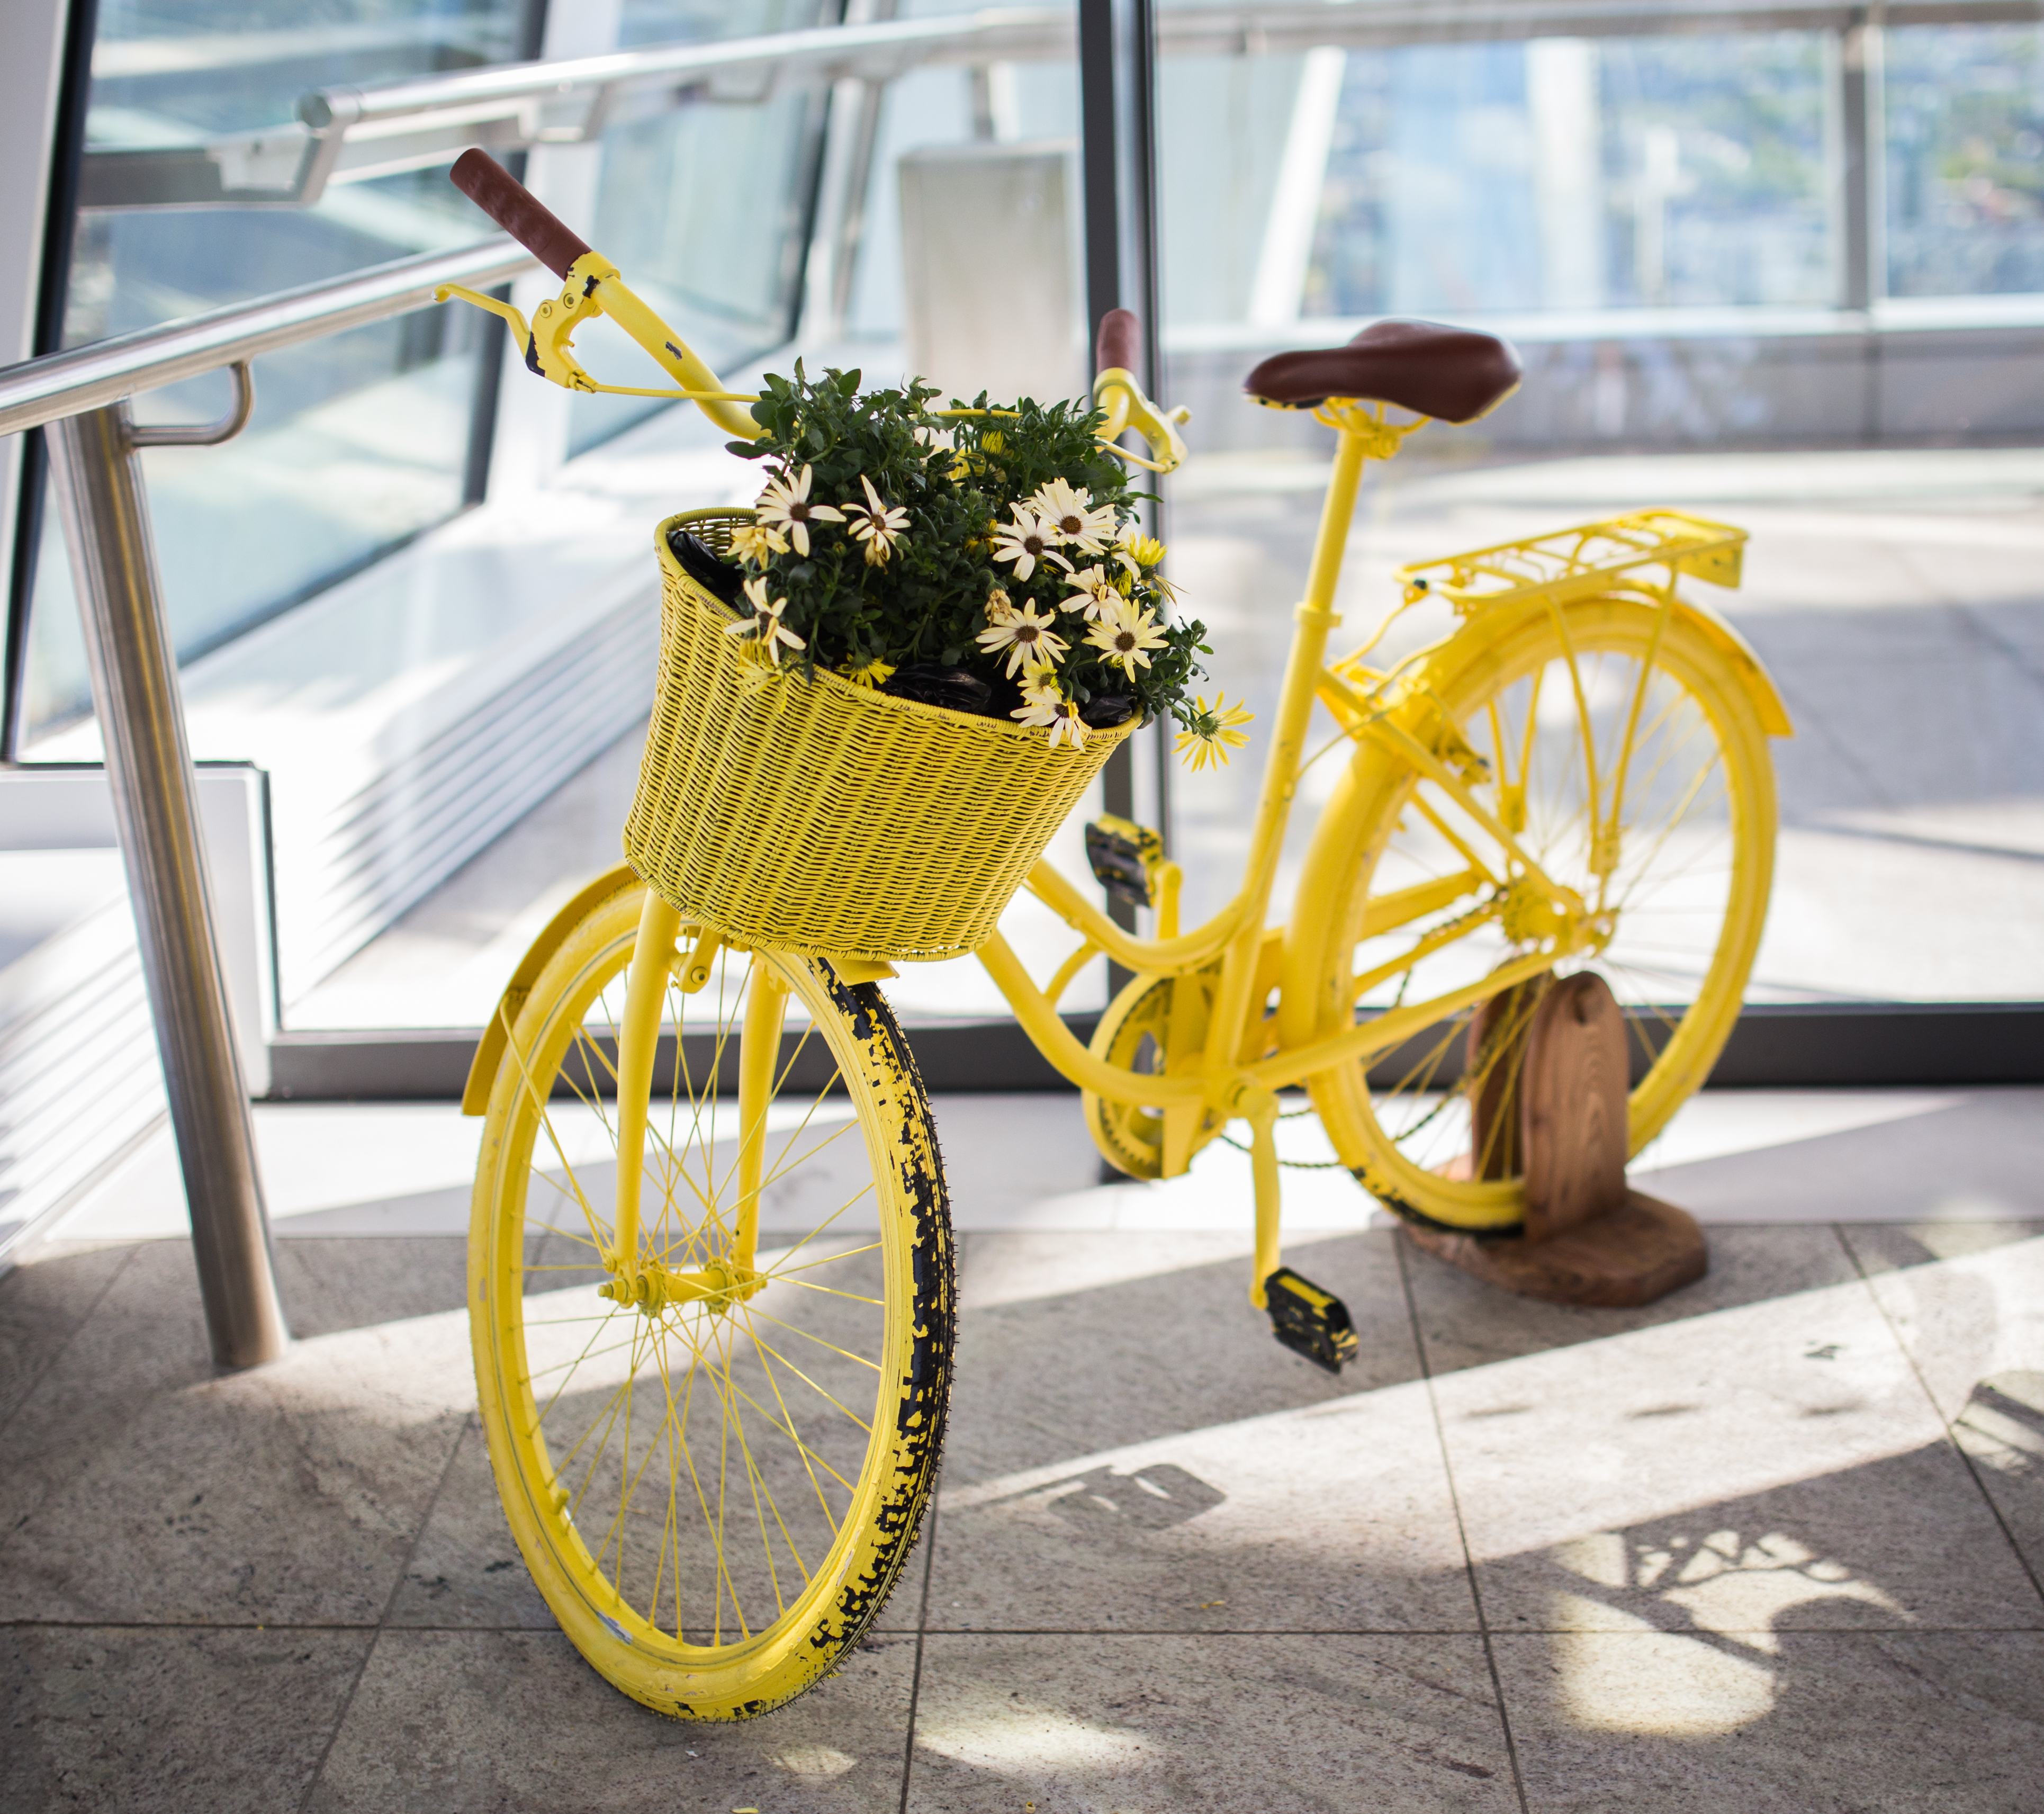 Yellow Cycle, Bicycle, Bike, Cycle, Decoration, HQ Photo